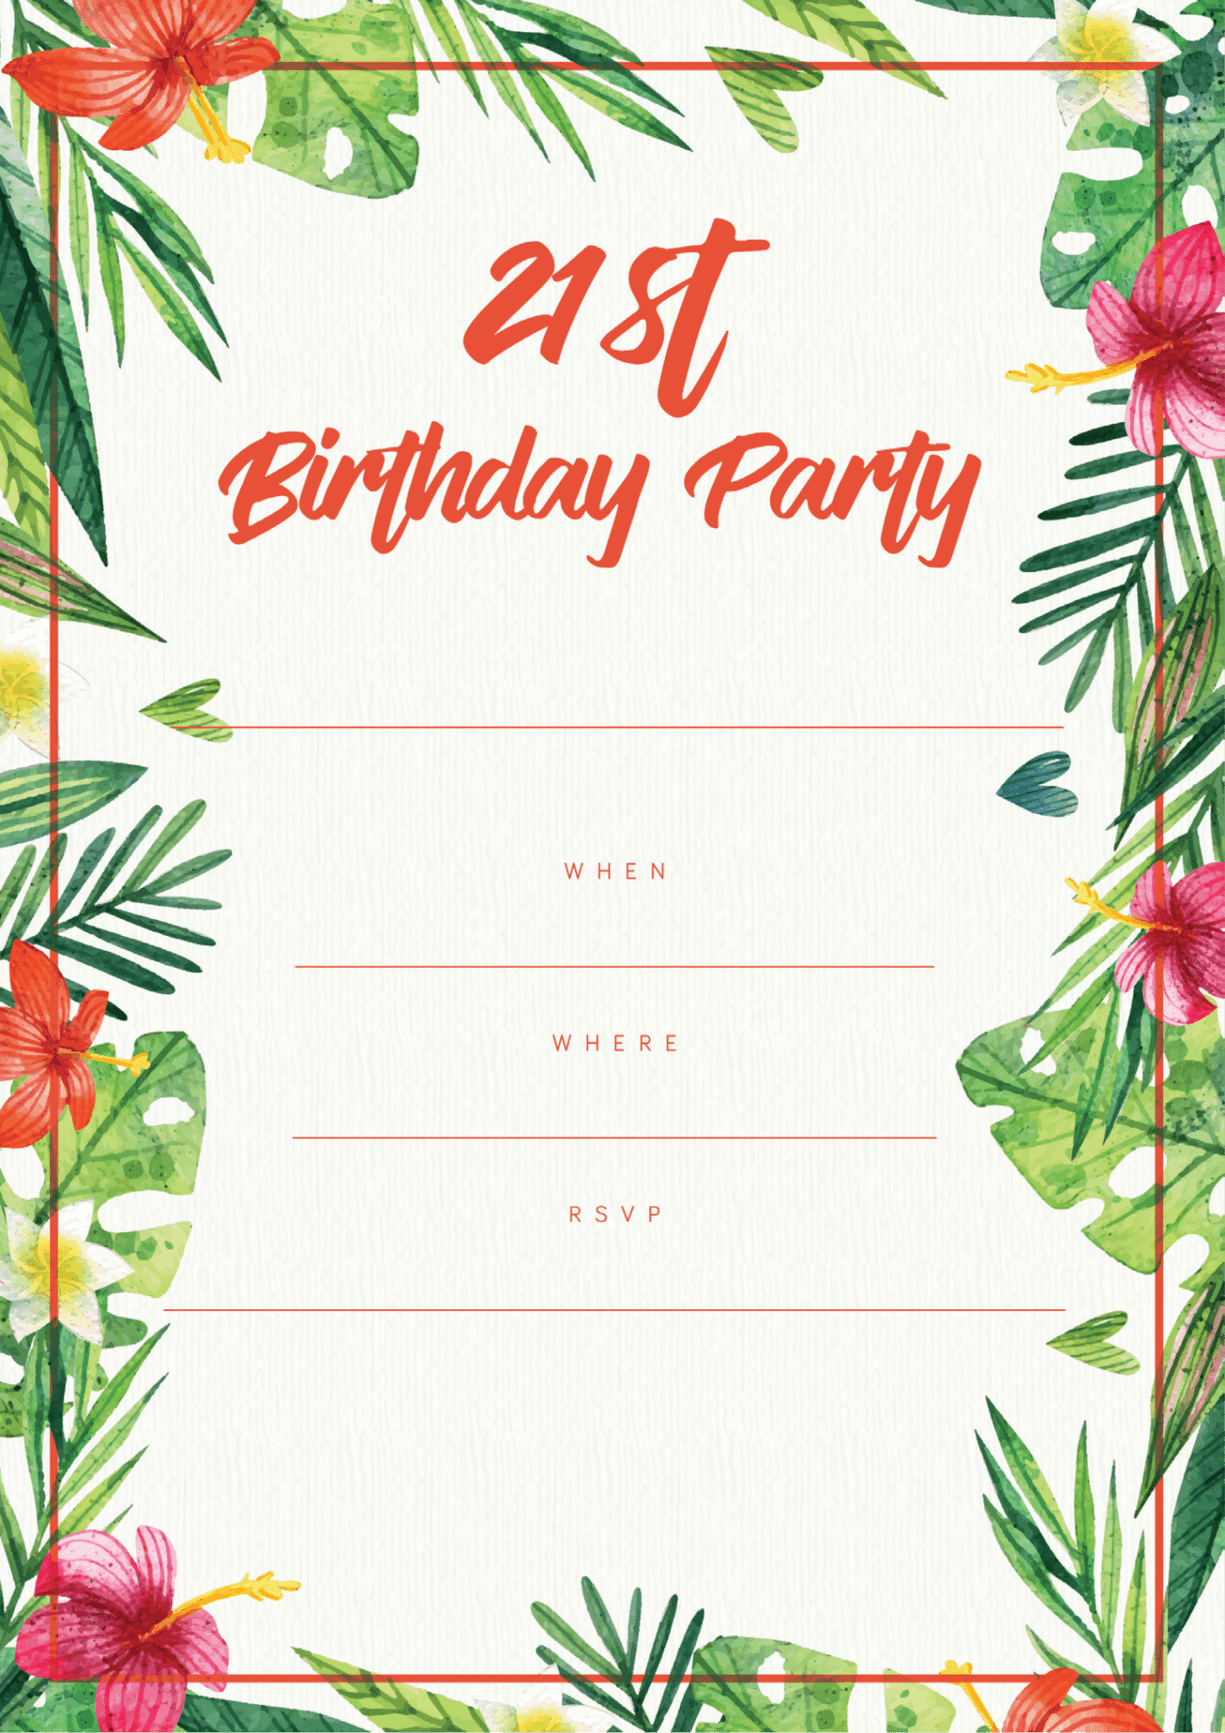 Free 21st Birthday Party Invitations | Print At Home Designs